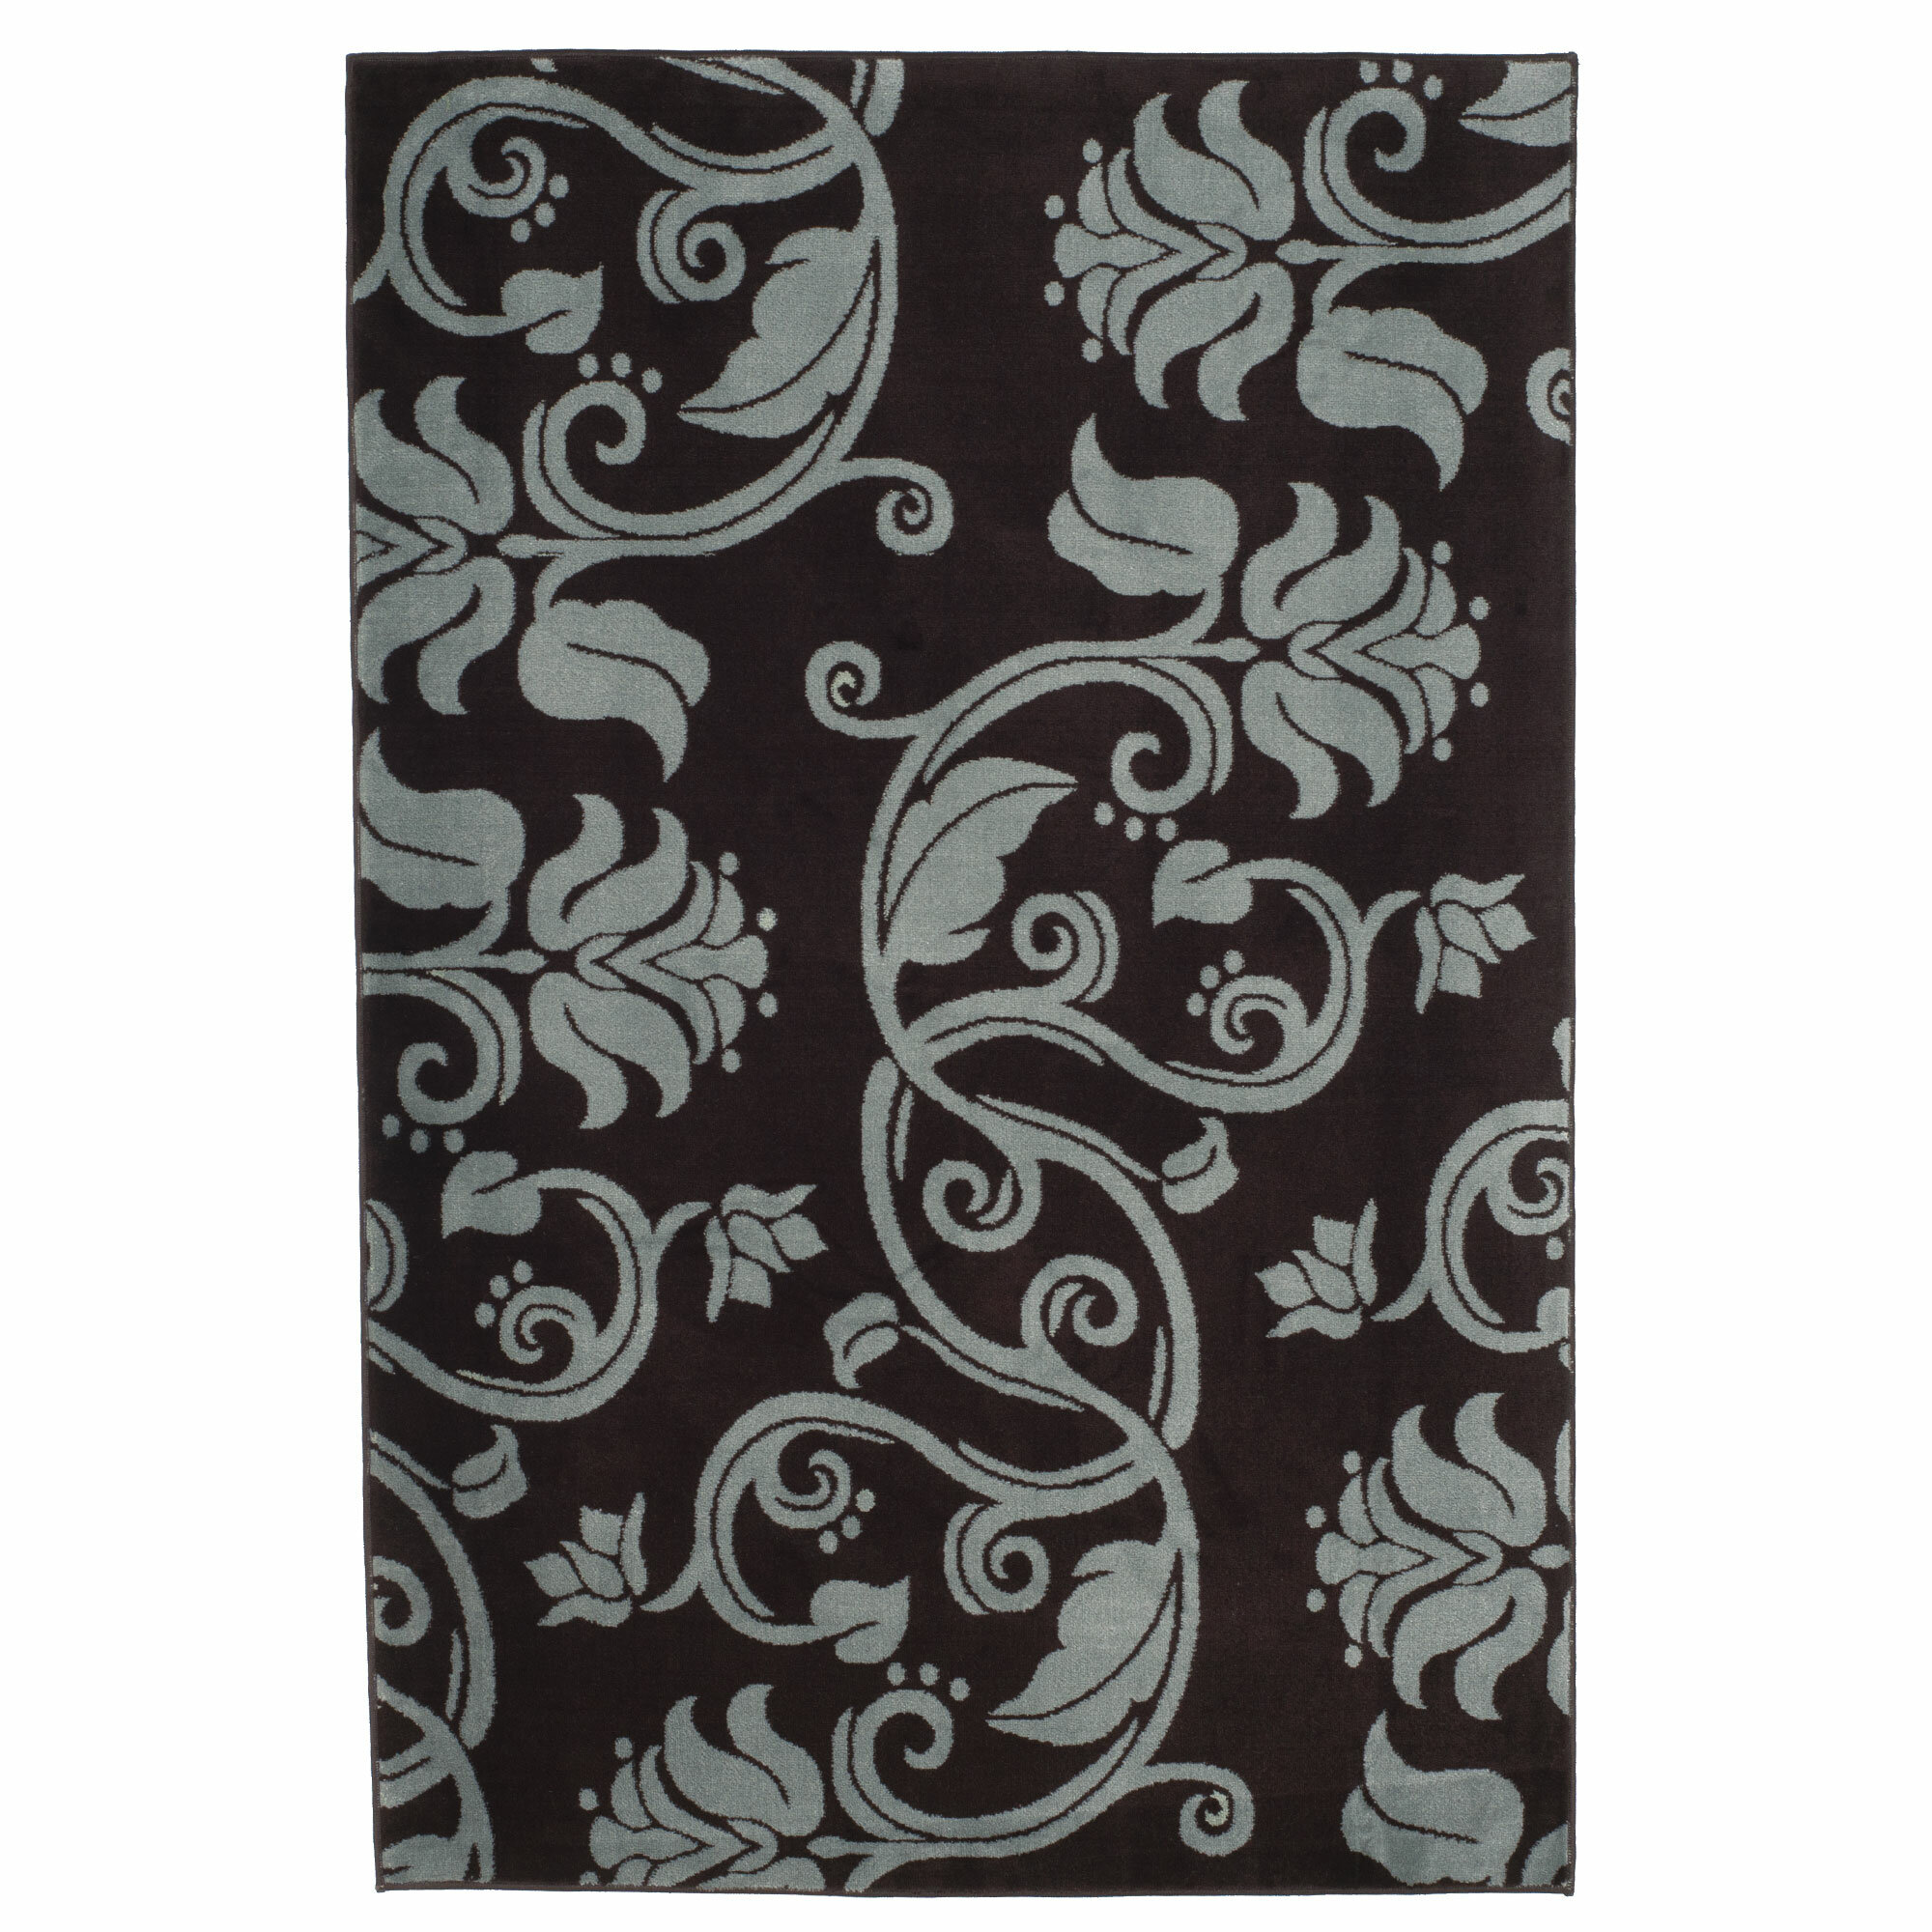 Lavish Home Floral Scroll Brown Blue Area Rug Reviews Wayfair